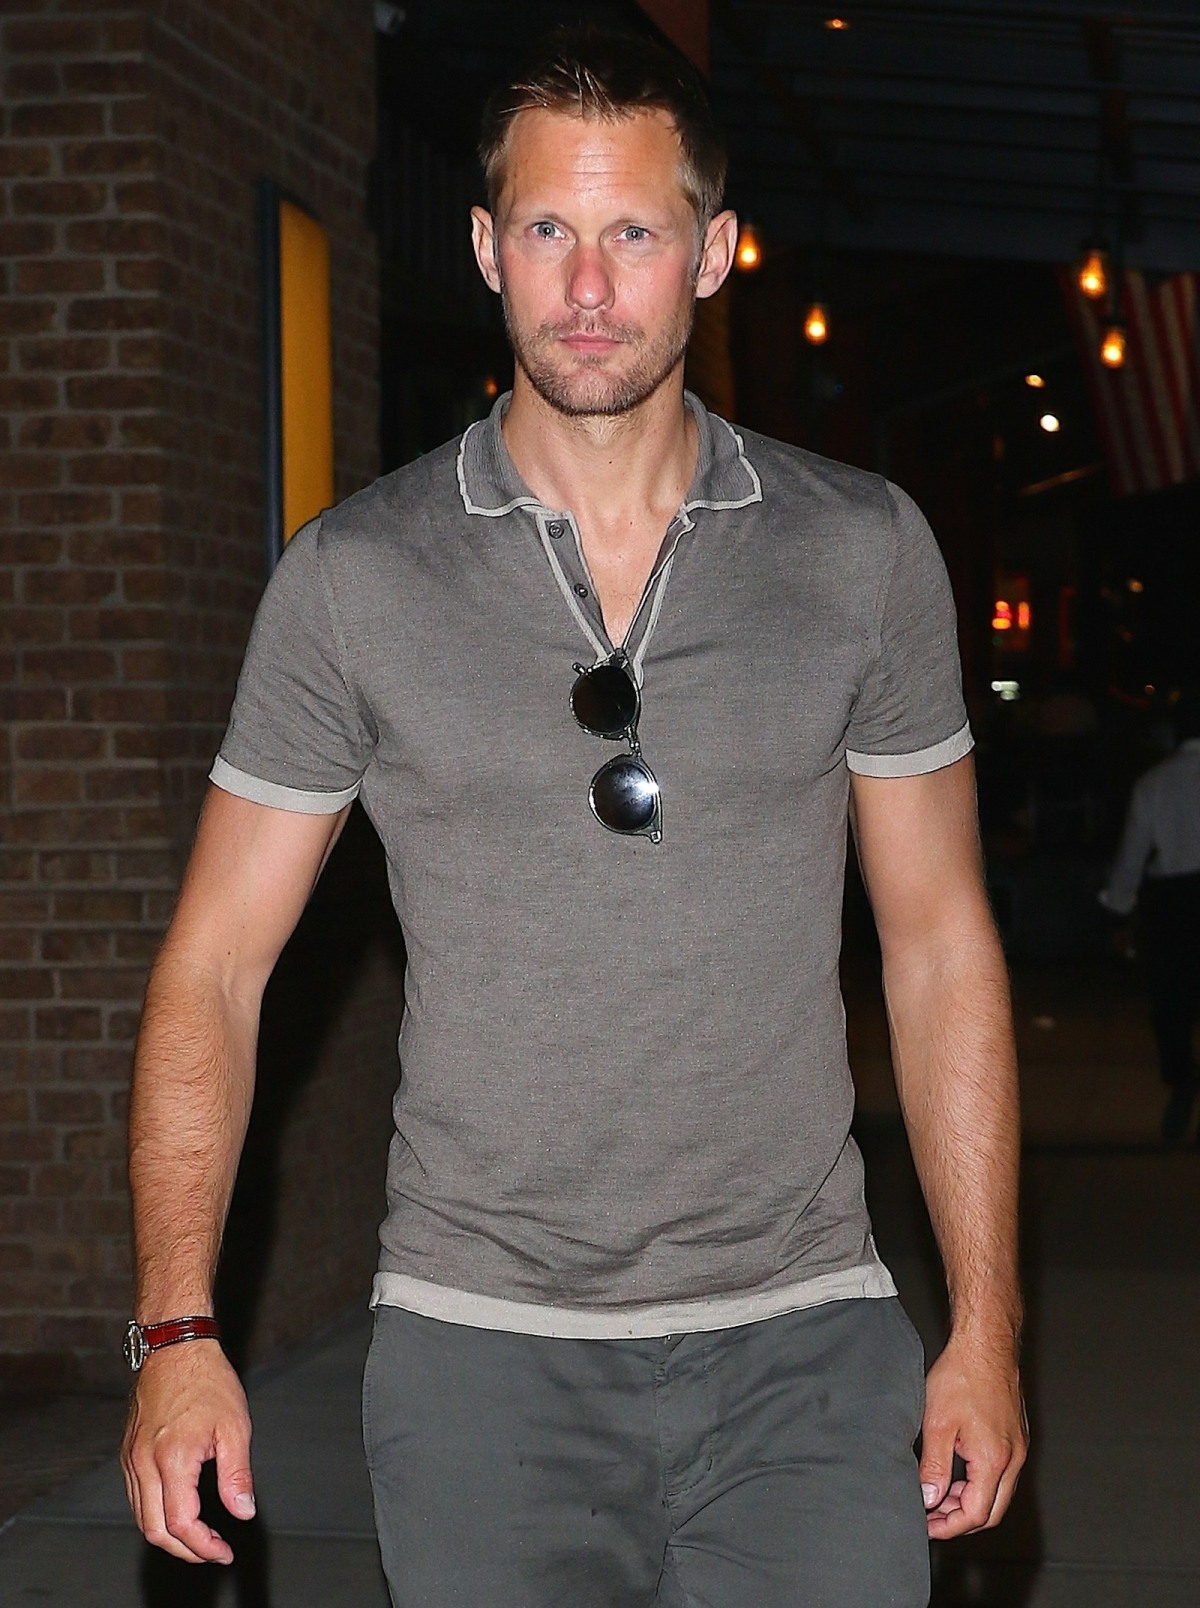 Alexander Skarsgard steps out for the evening in Tribeca